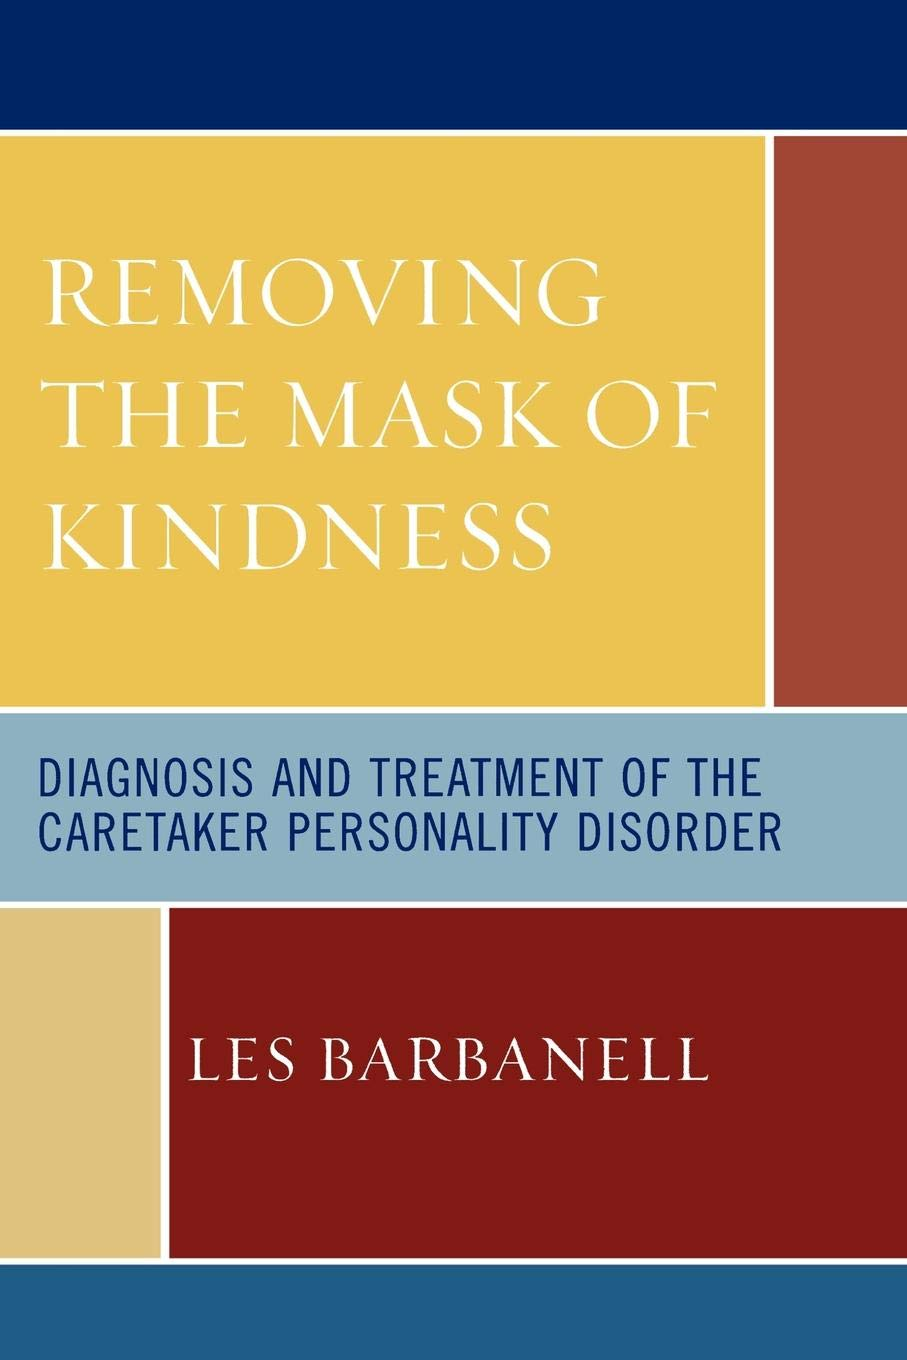 Removing the Mask of Kindness: Diagnosis and Treatment of the Caretaker Personality Disorder ebook